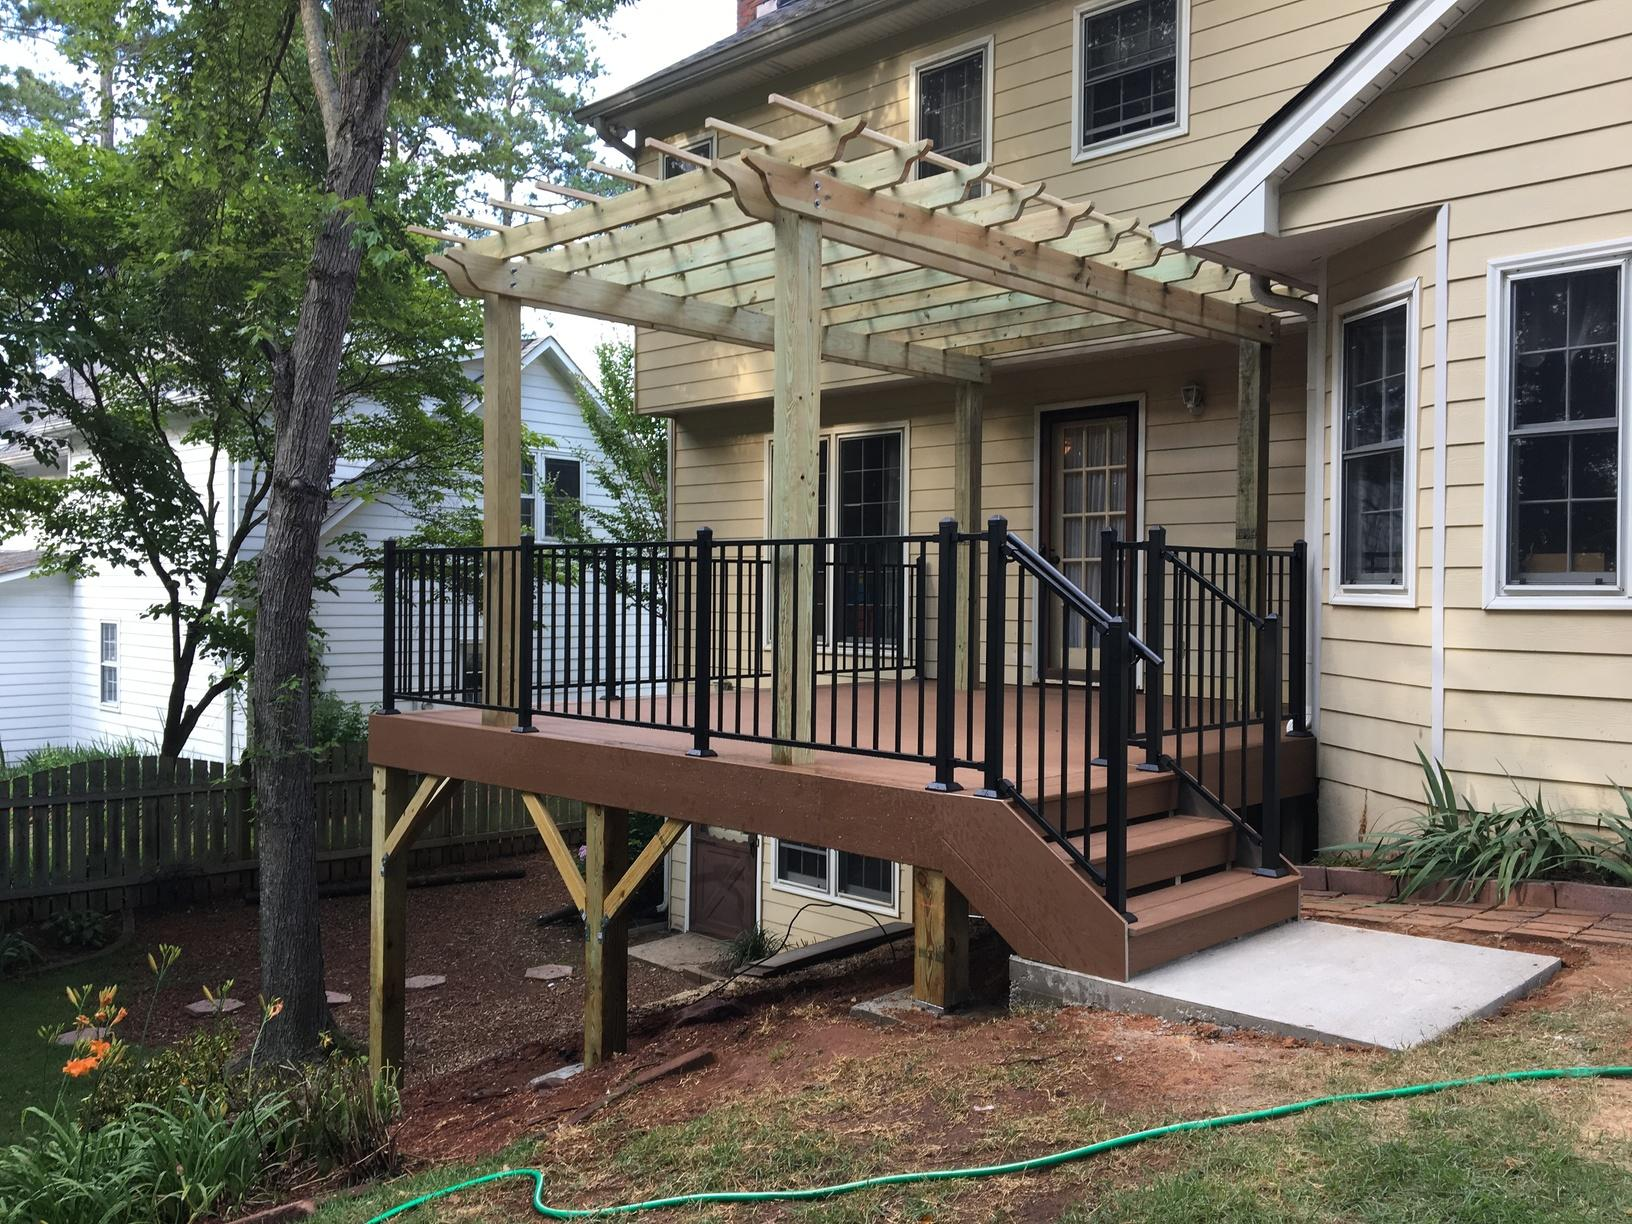 New Deck and Pergola Installed in Marietta, GA - After Photo